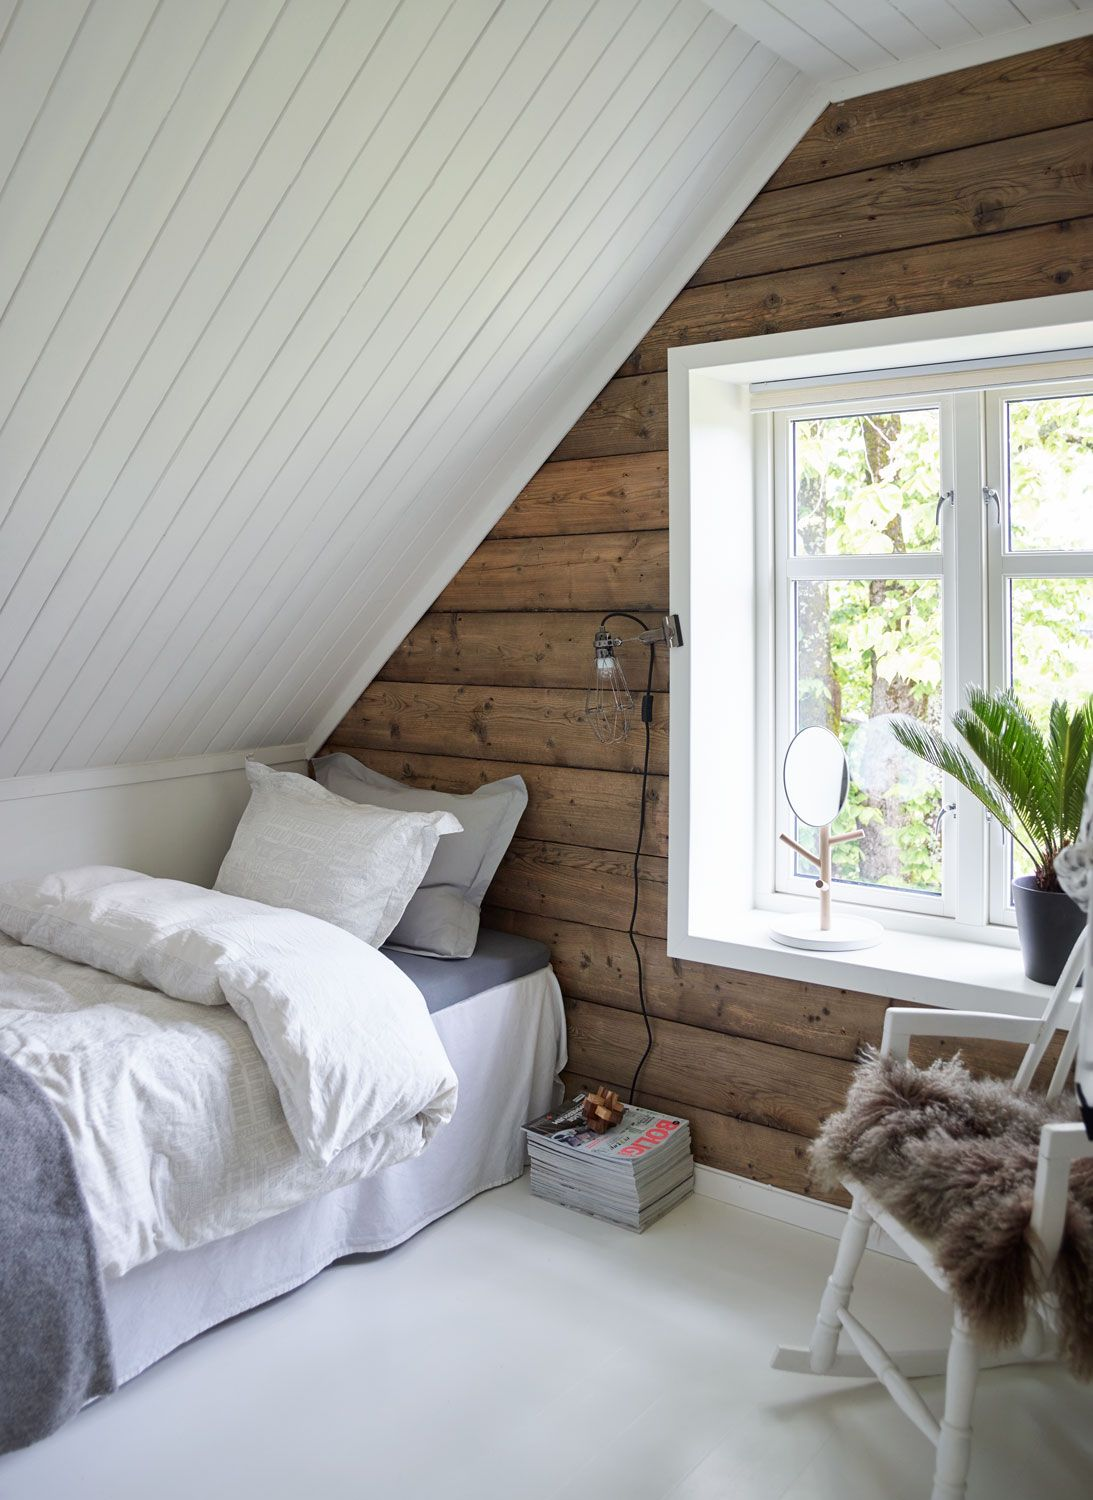 Bedroom Window Design Attic Bedroom Design And Décor Tips Bedroom Attic